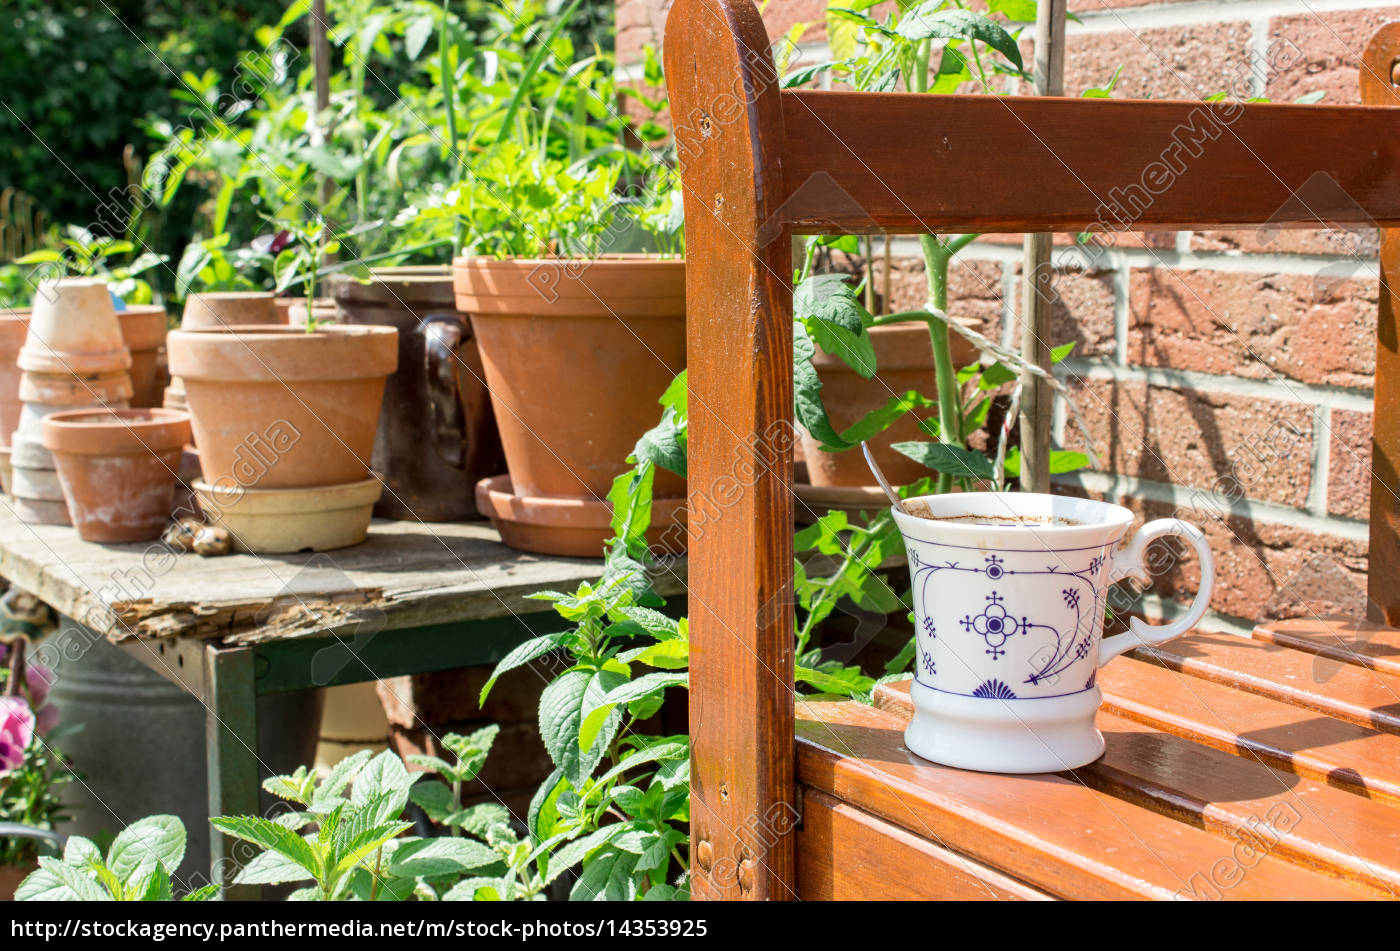 Flower Pots With Herbs And Vegetables And Coffee Cup